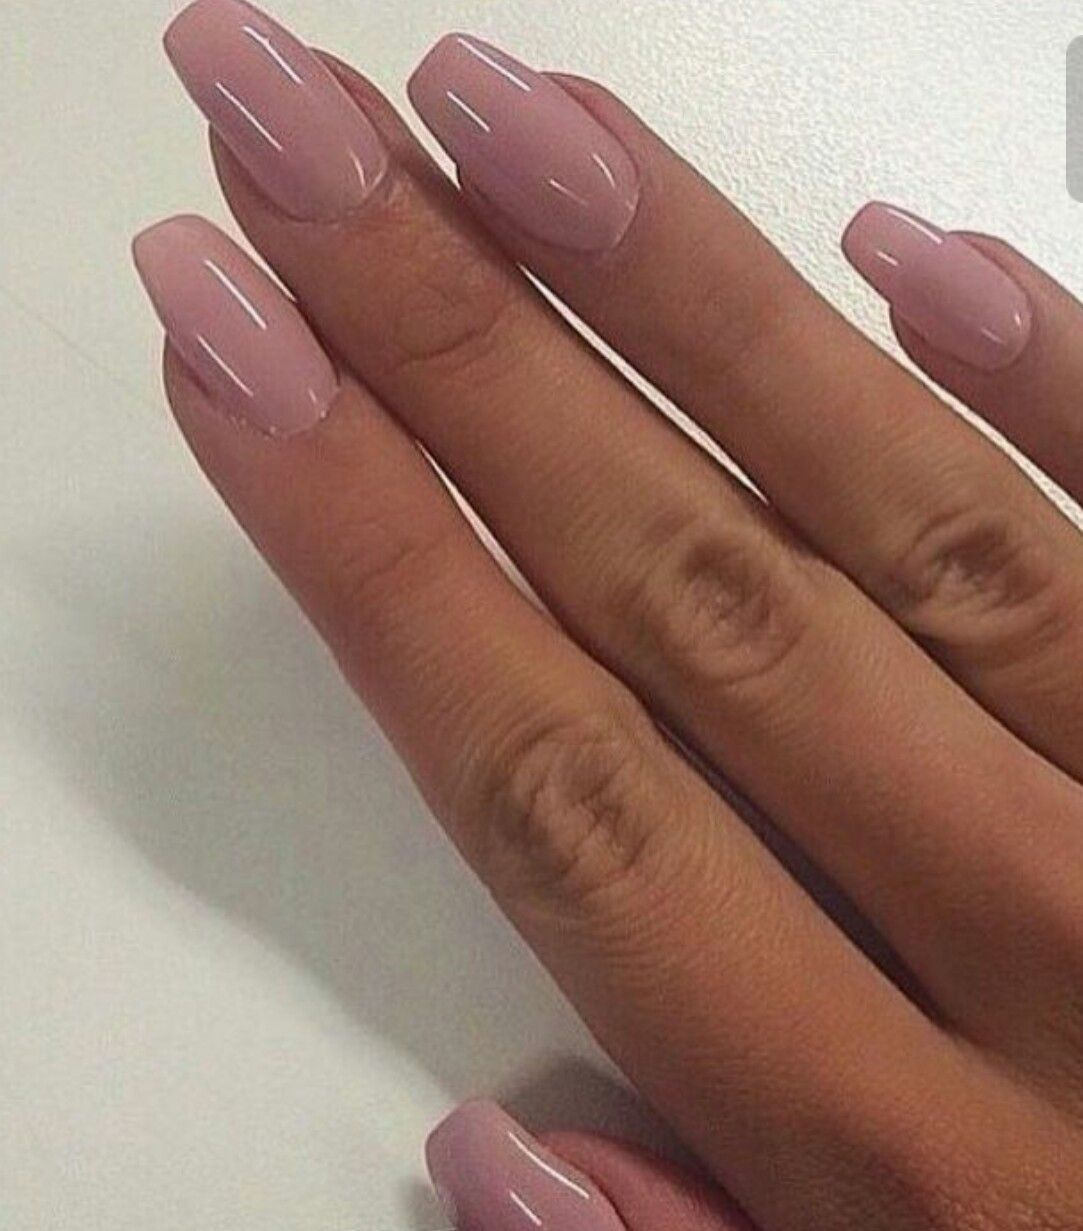 Mauve Nails❤ | Mr. & Mrs. Christopher | Pinterest | Mauve nails ...